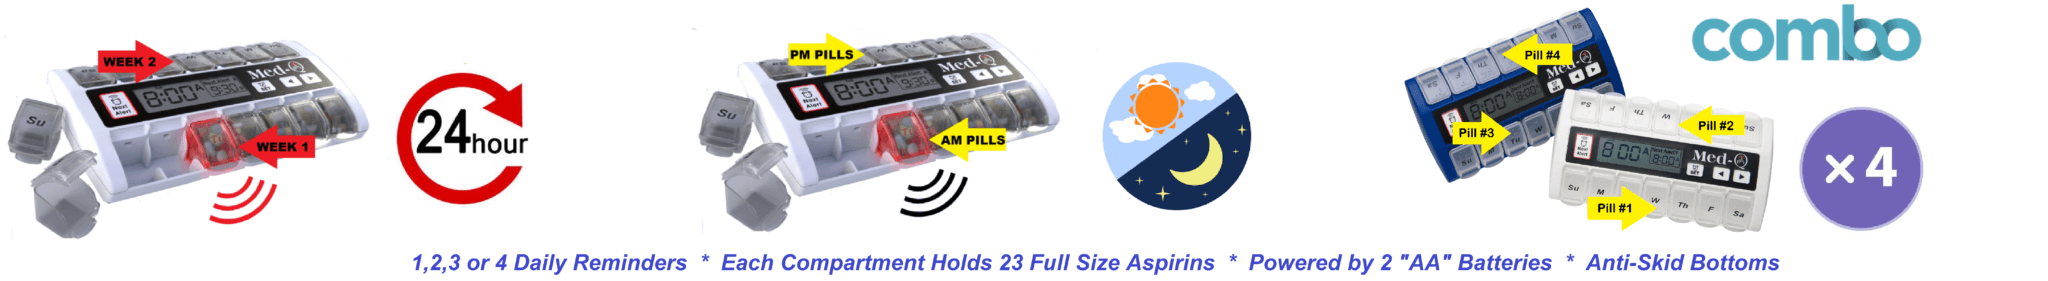 programmable pill reminder